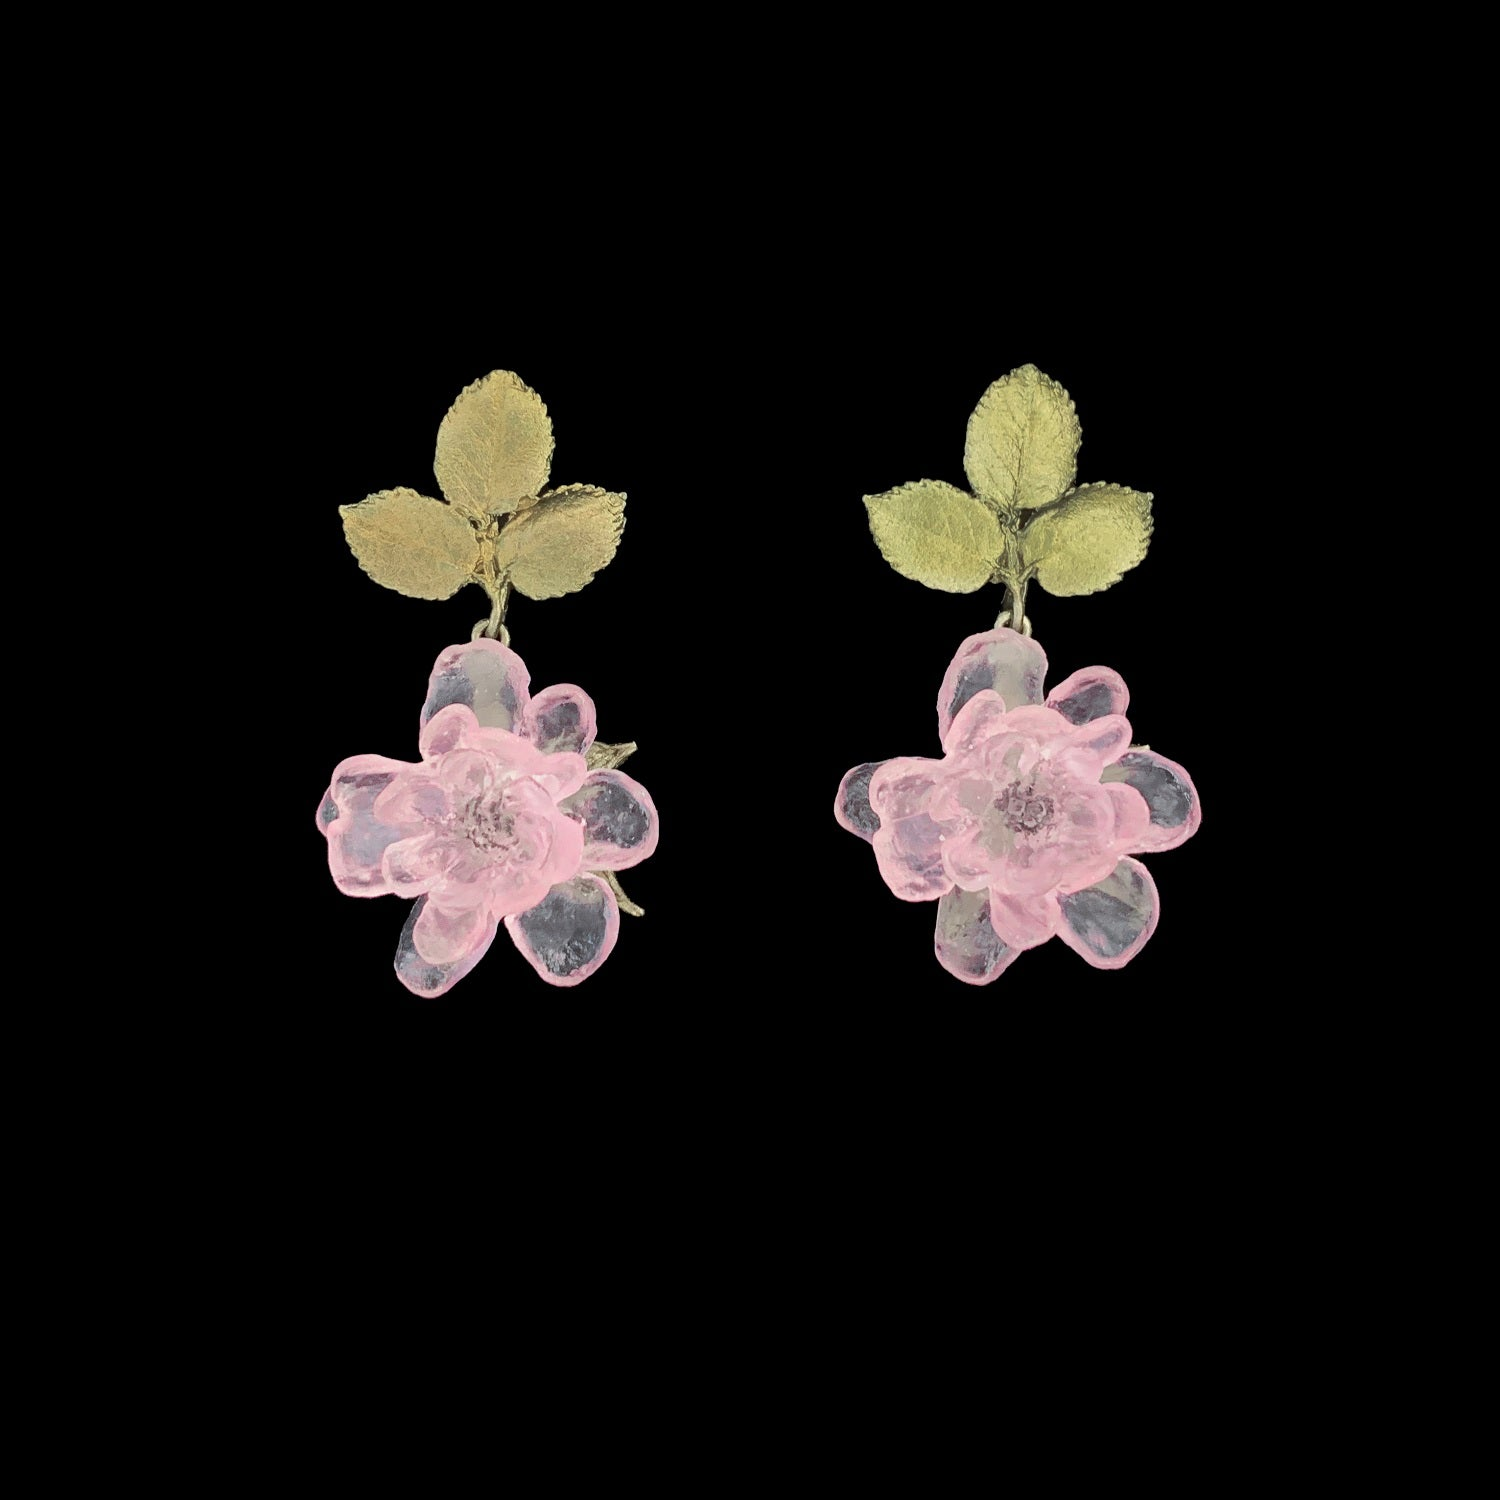 Blushing Rose Earrings - Post Drop